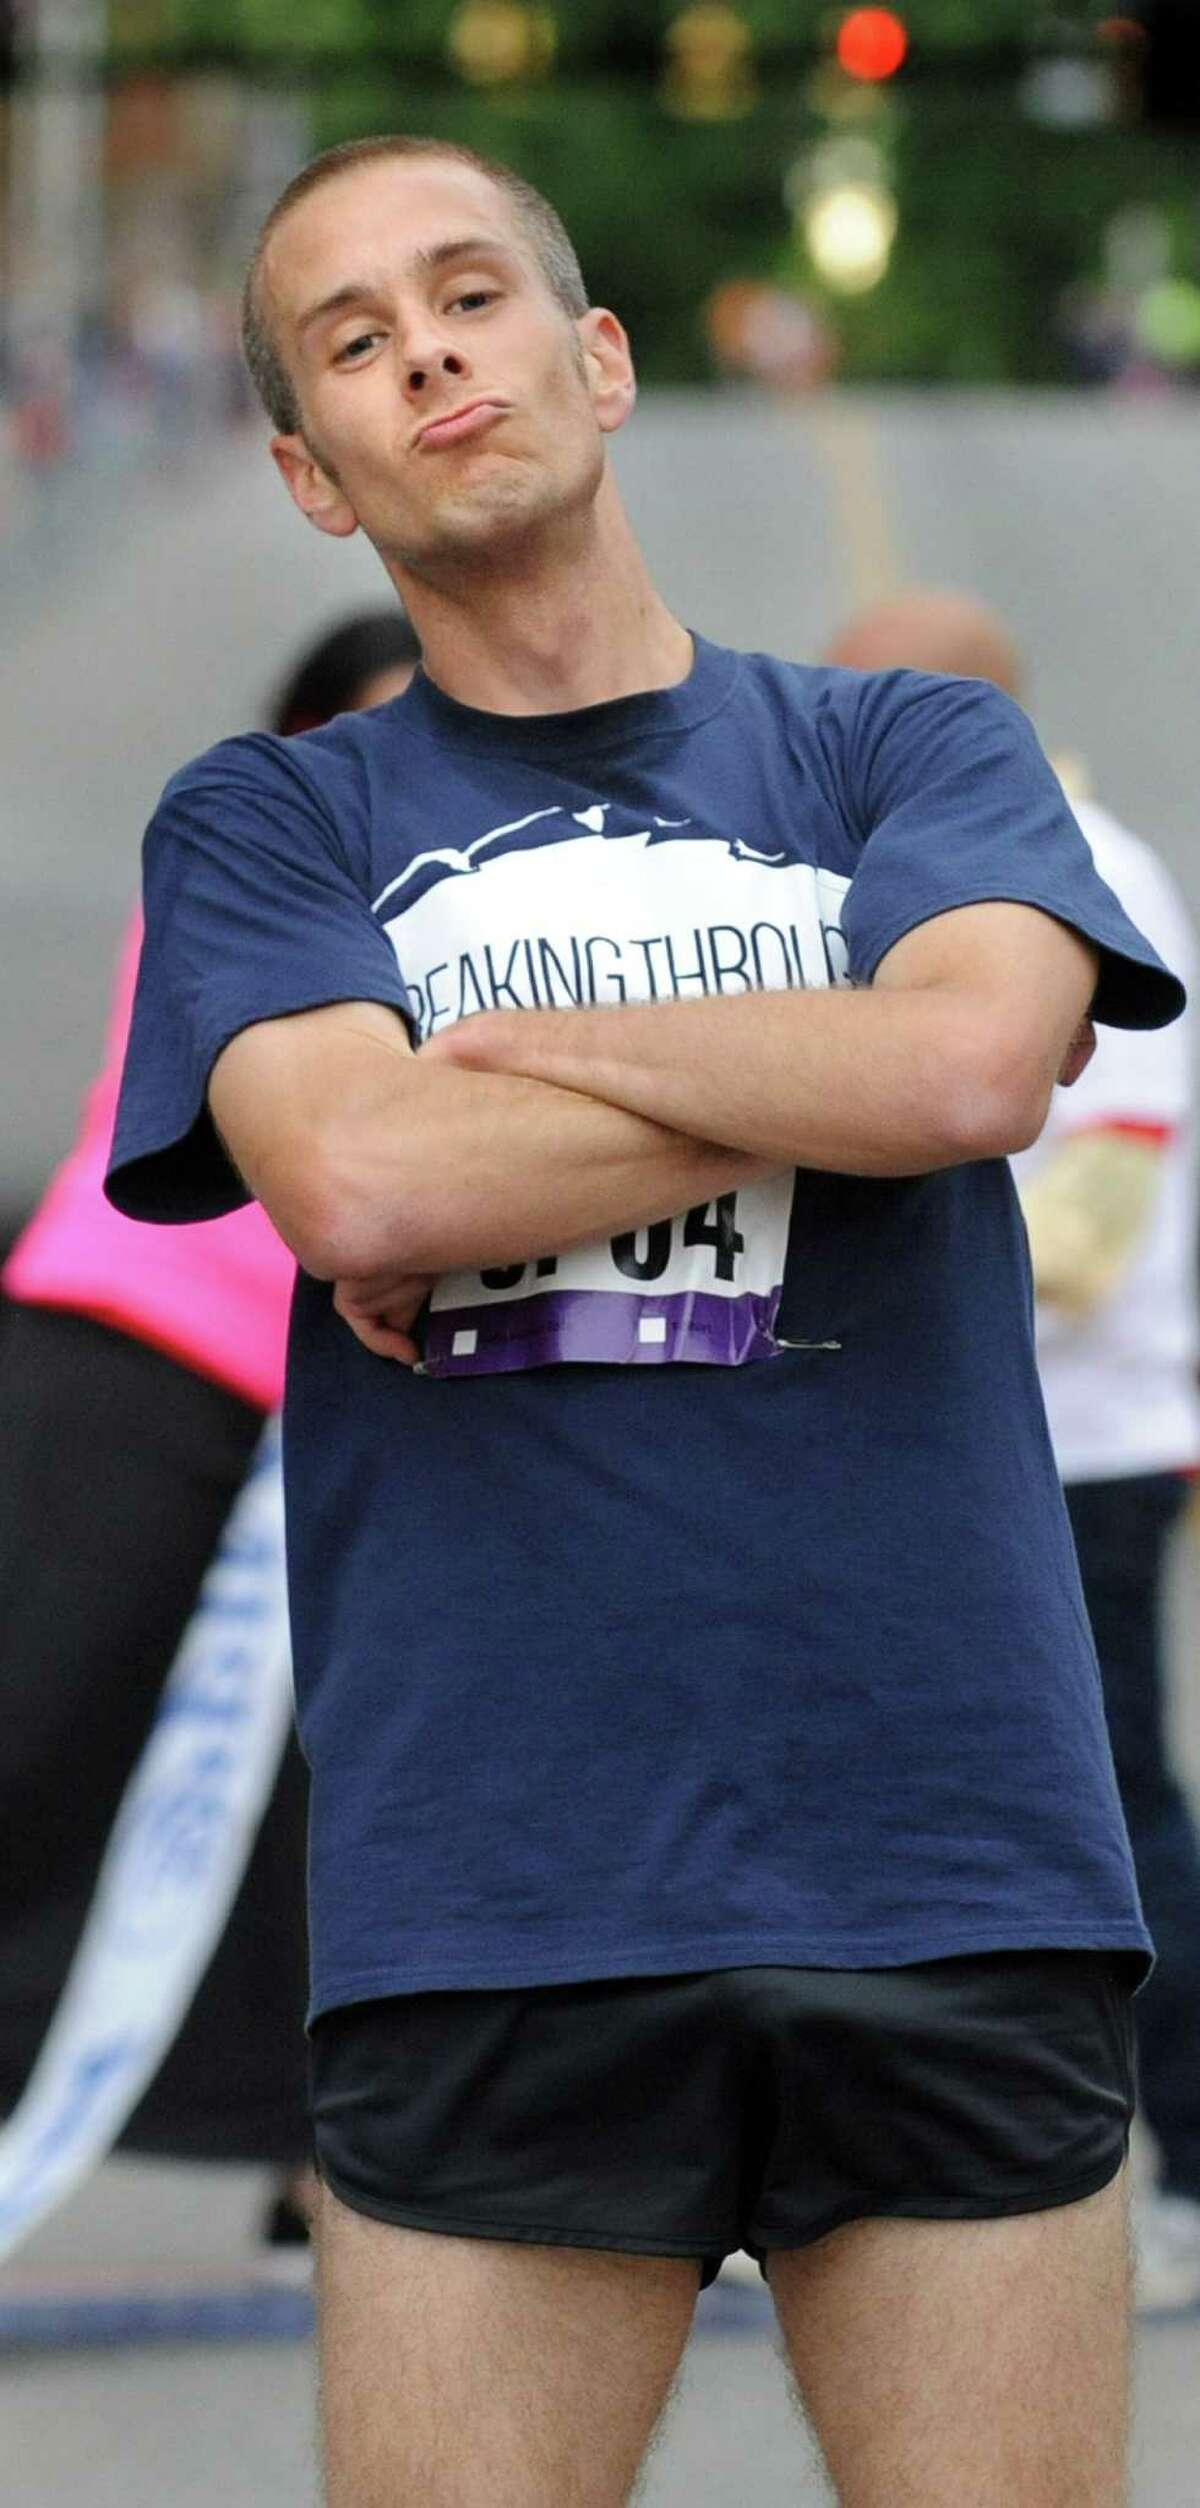 Kieran O'Connor of Tyler Technologies poses for the camera when he's the first man to cross the finish line during the CDPHP Workforce Team Challenge on Thursday, May 21, 2015, in Albany, N.Y. More than 10,000 runners and walkers signed up from 500-plus organizations. (Cindy Schultz / Times Union)